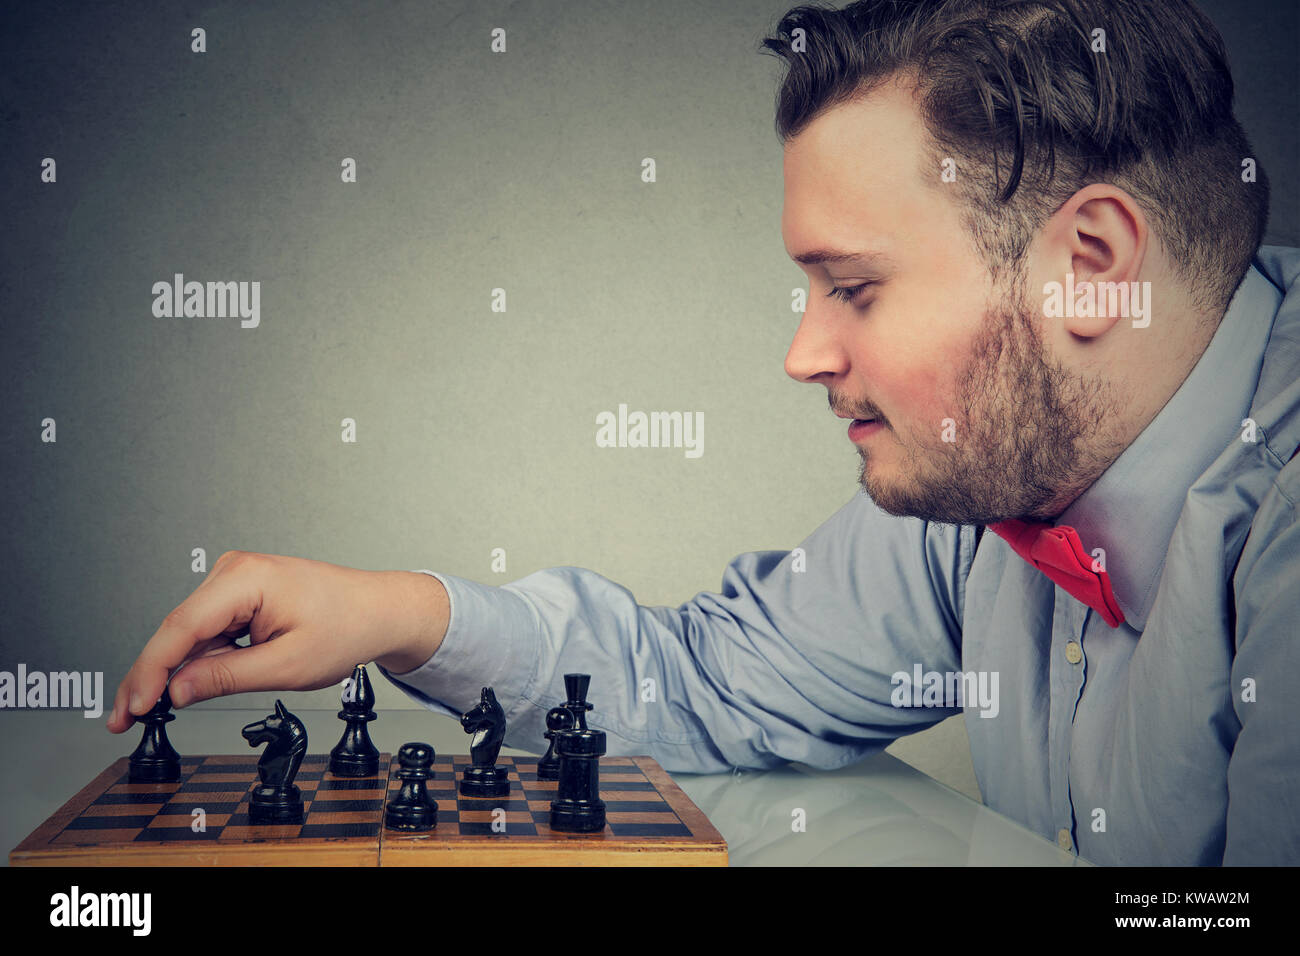 Young chunky man concentrated on building strategy while playing chess. Stock Photo